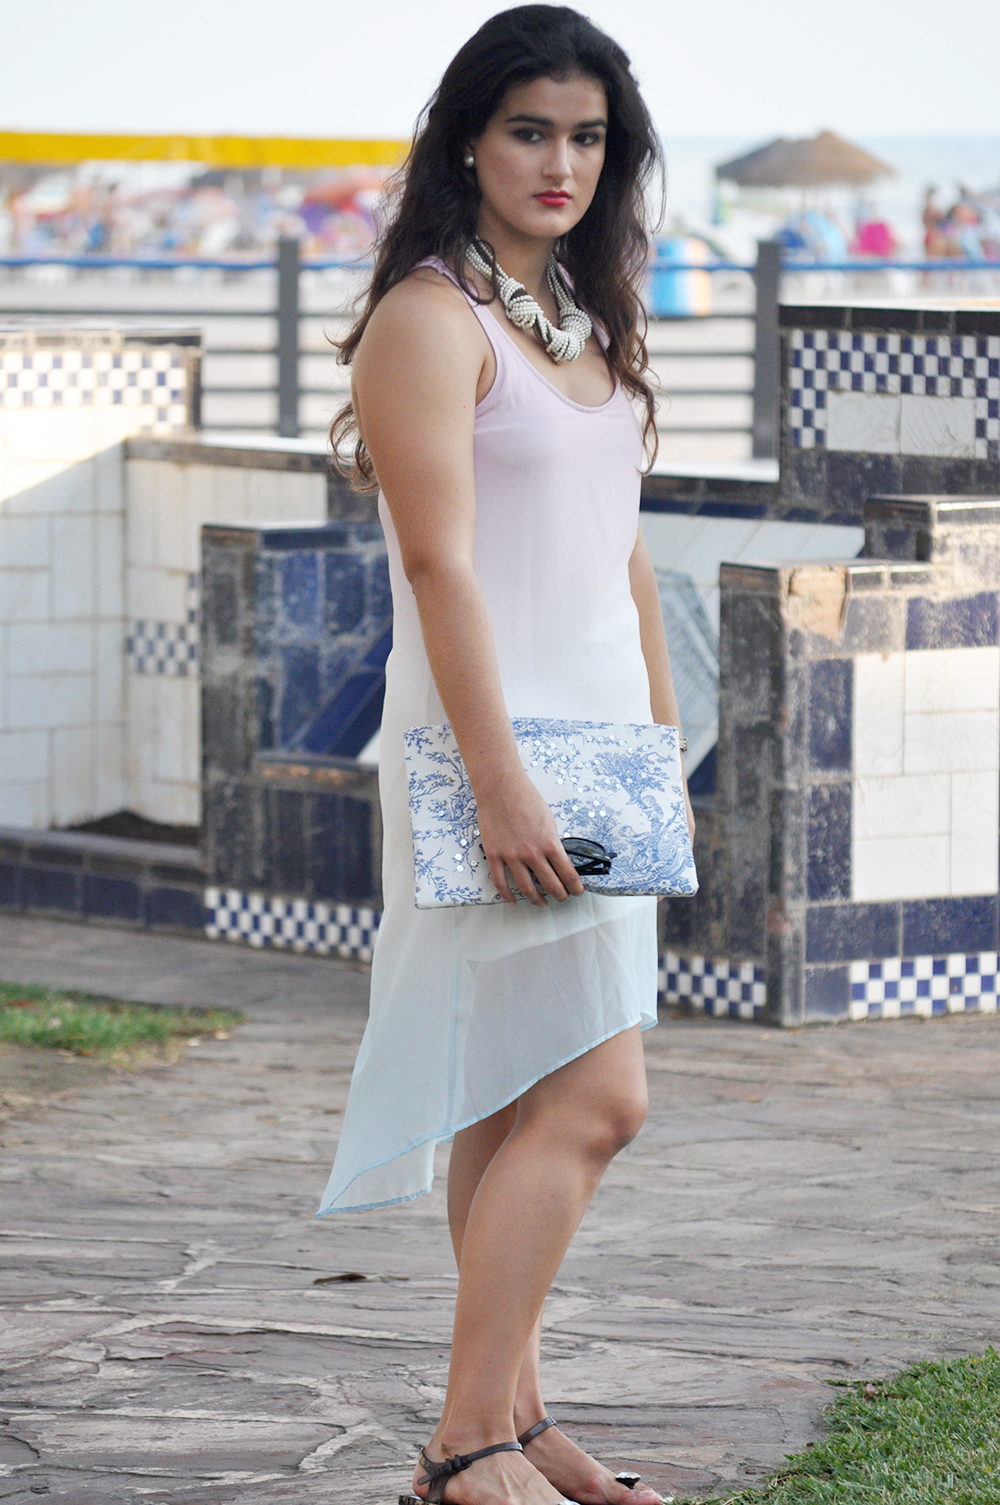 oropesa del mar something fashion town blogger, diy clutch how to toile de jouy, amanda ramon mango dress valencia streetstyle ombre dress summer, jellies gloria ortiz necklace carolina herrera spain fblogger